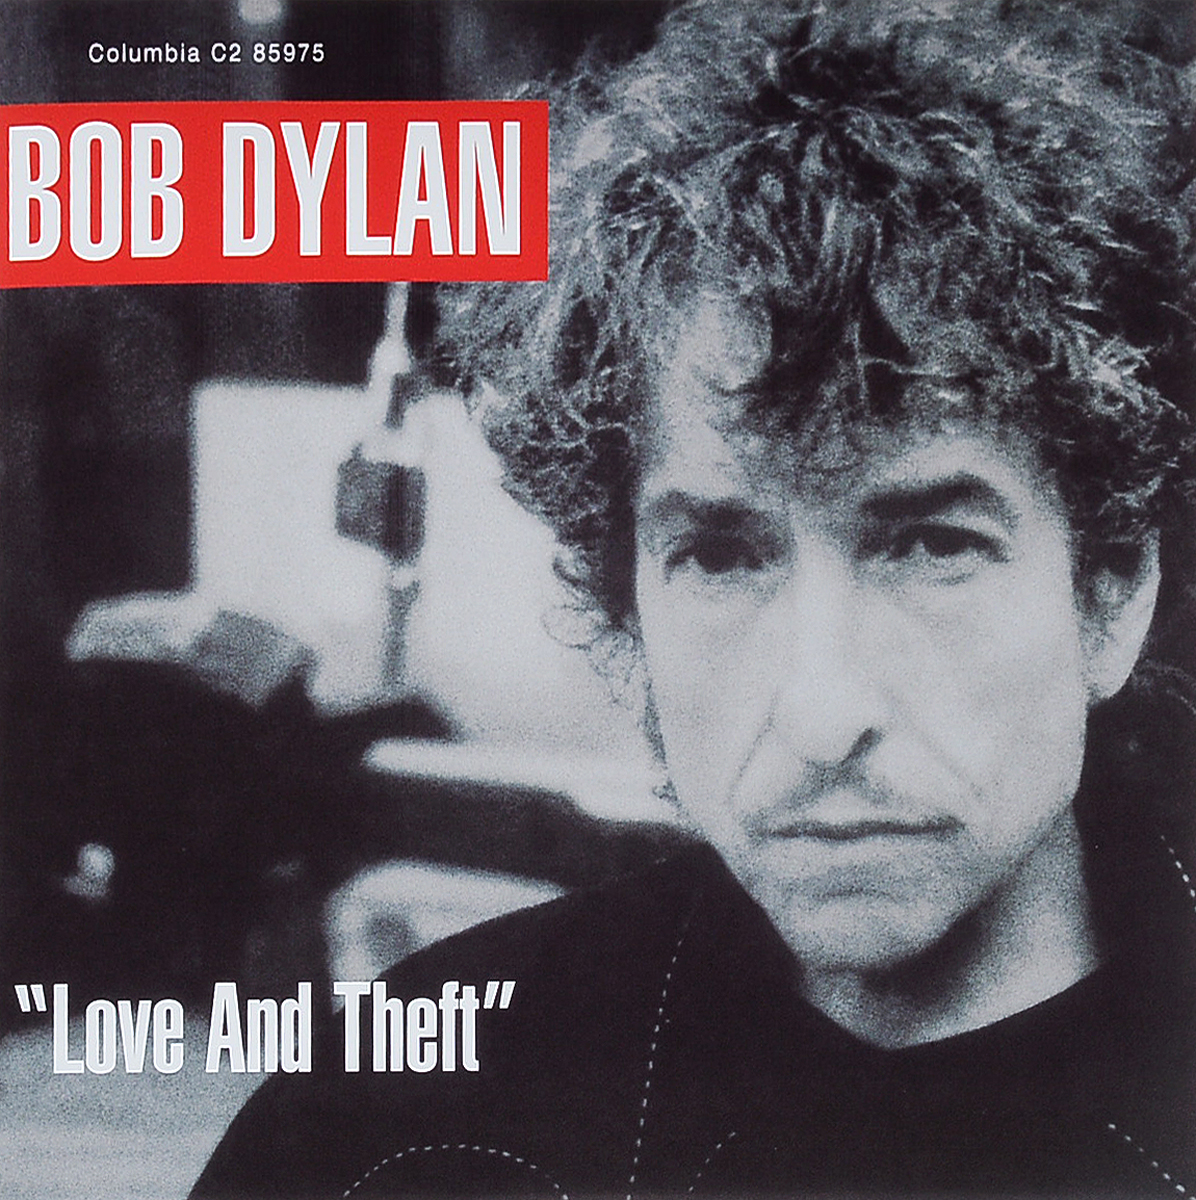 Боб Дилан Bob Dylan. Love And Theft (2 LP) боб дилан dylan bob another side of bob dylan lp